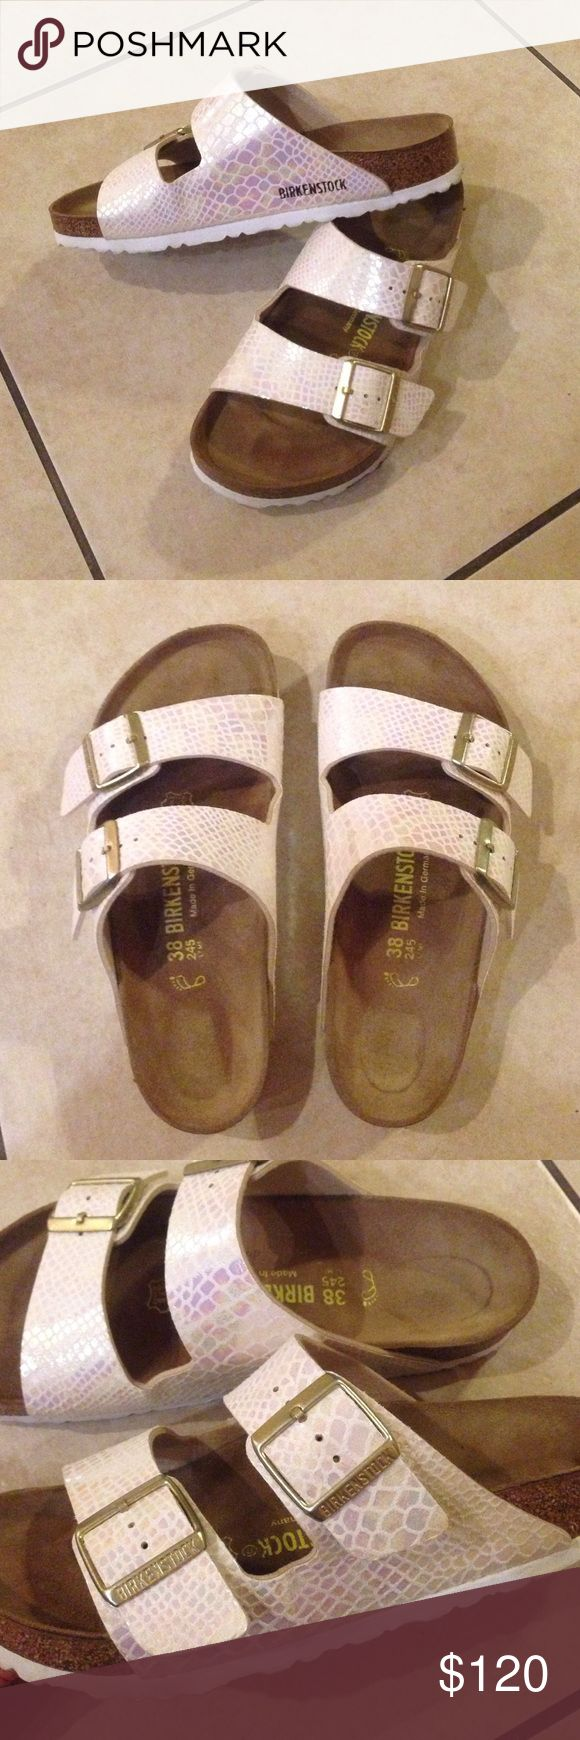 Birkenstock Sandals Great condition, authentic birkenstock scale sandals. Only worn outside once, before admitting they are just too small for me :( Birkenstock Shoes Sandals